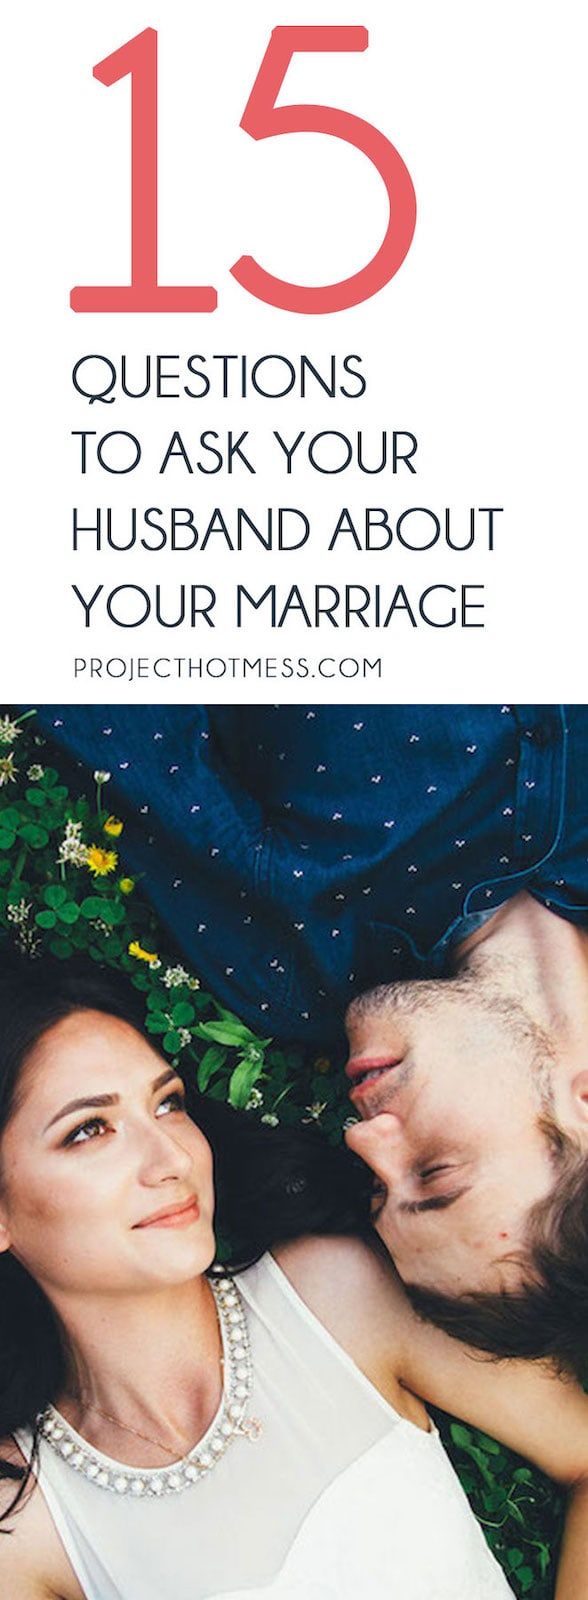 Want to spark off some conversations with your husband and have some deep and meaningful chats? Why not use these 15 questions to ask your husband about your marriage as a starting point and some inspiration? And it's a great date night idea too!